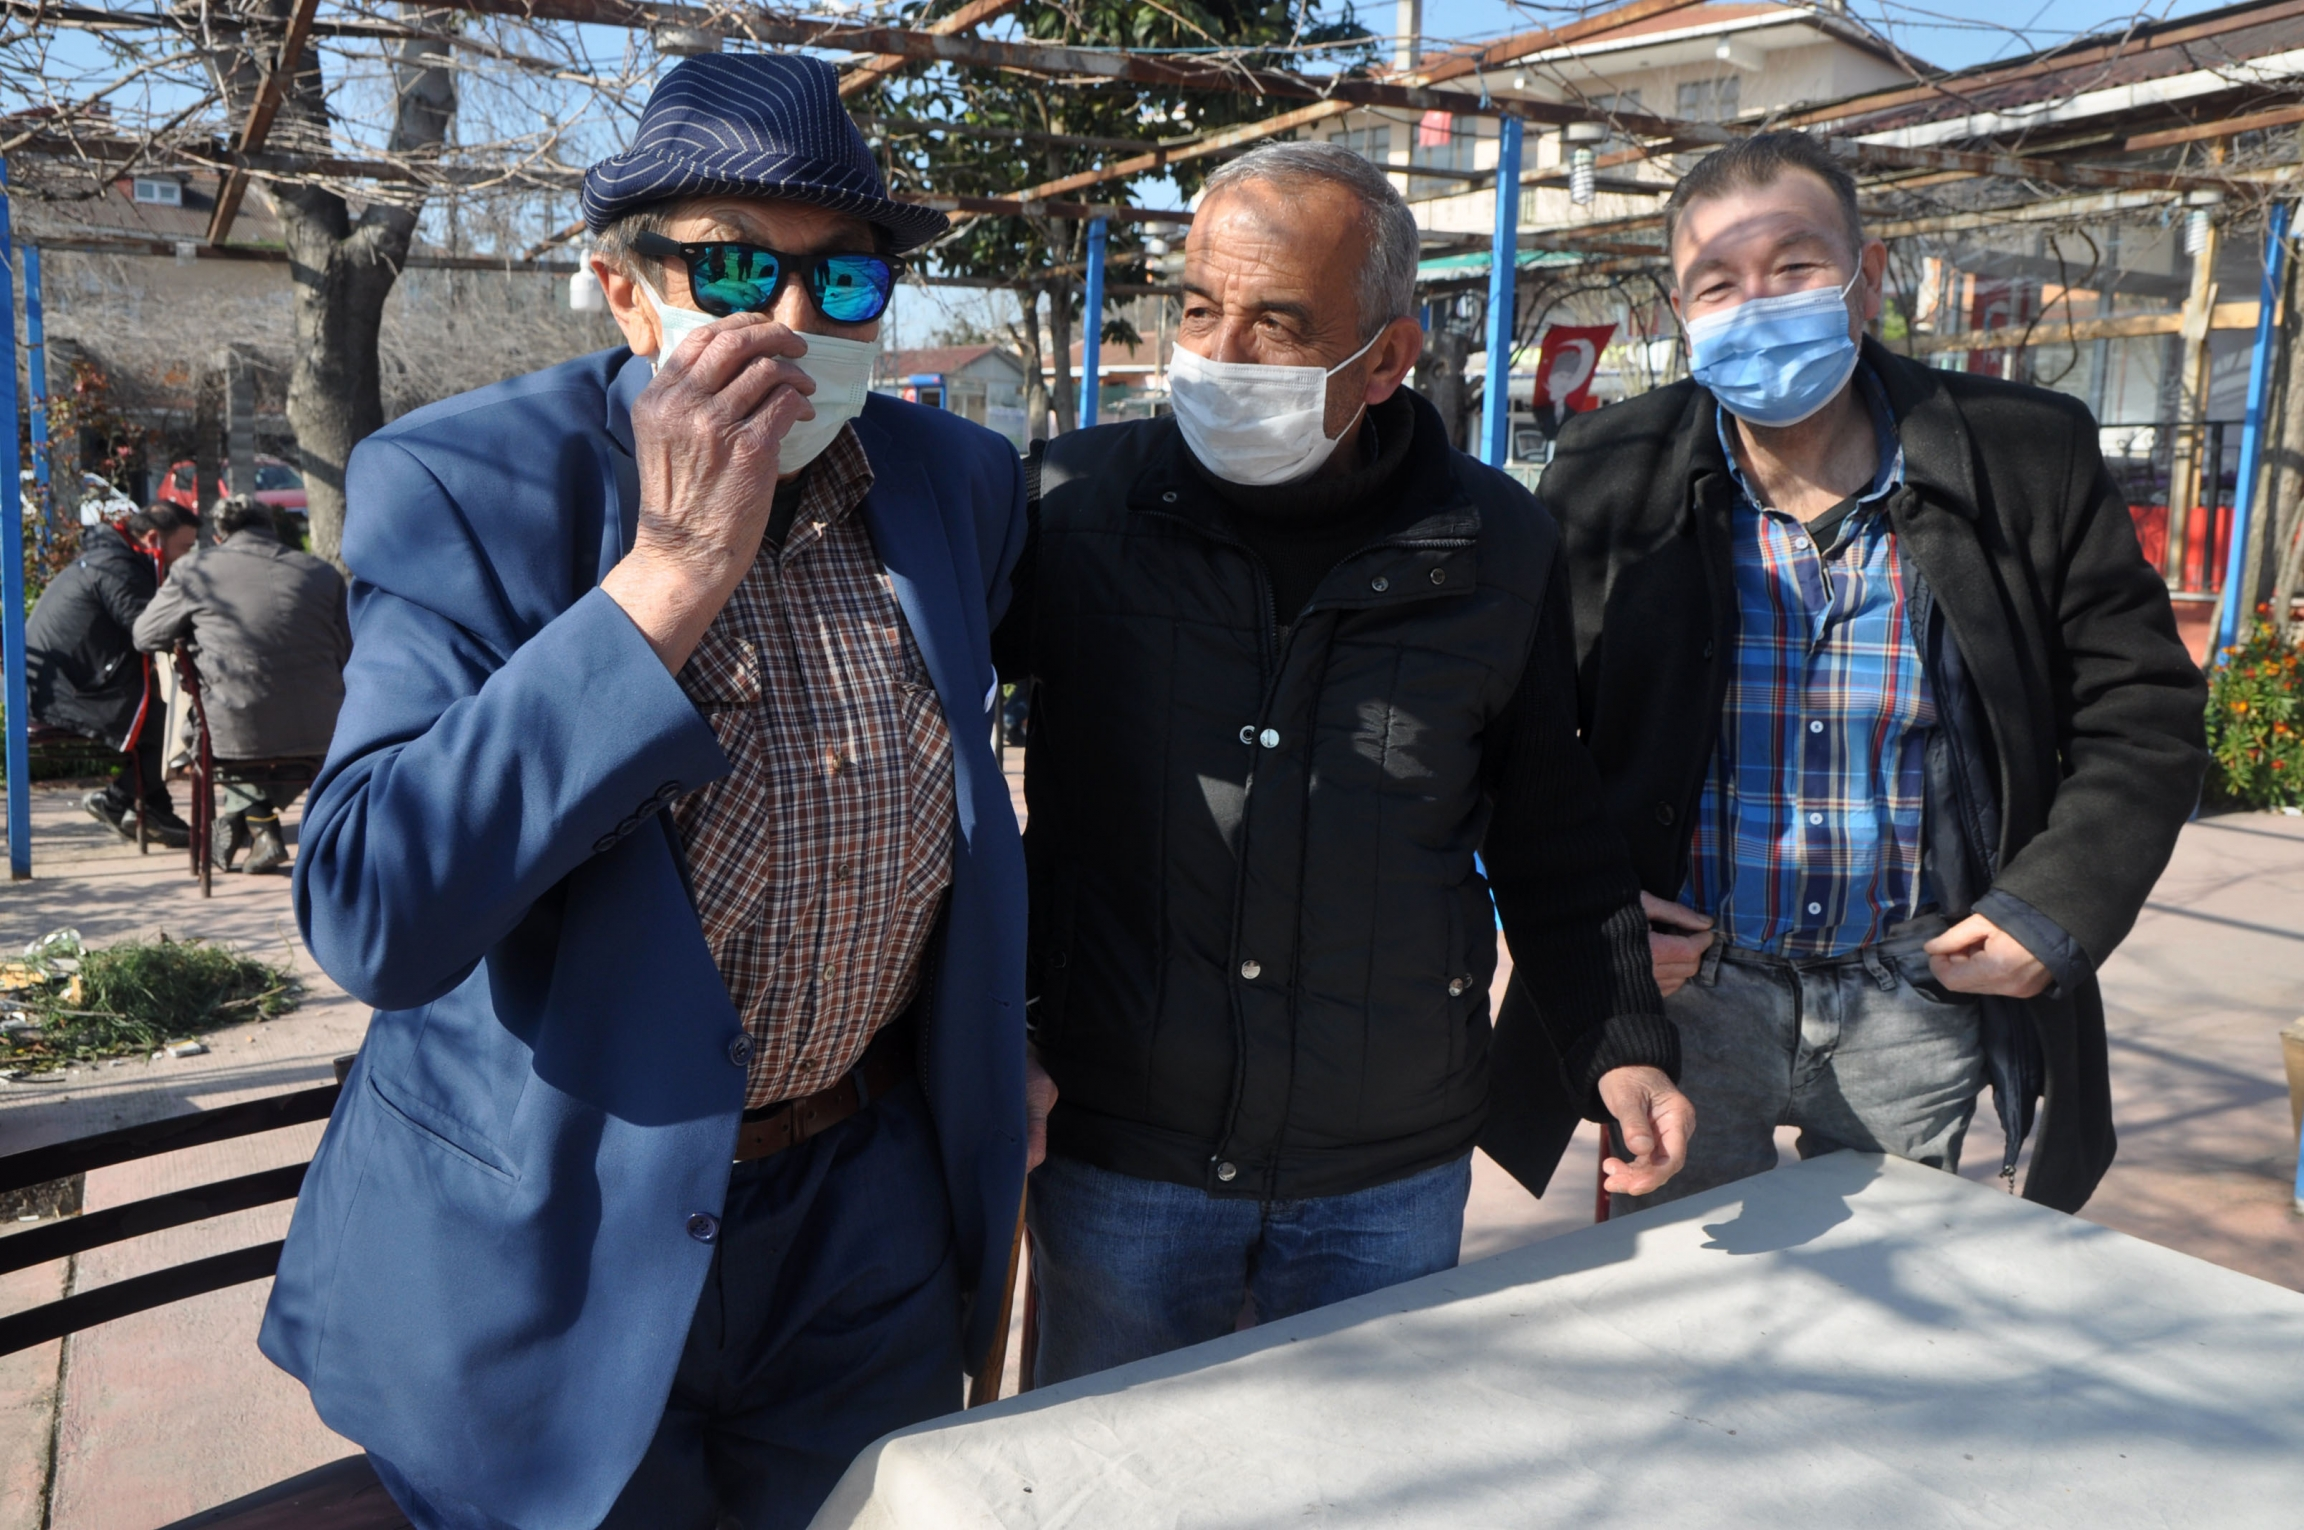 Three older men wearing blue and black clothing and face masks pose together in an outdoor tea garden.